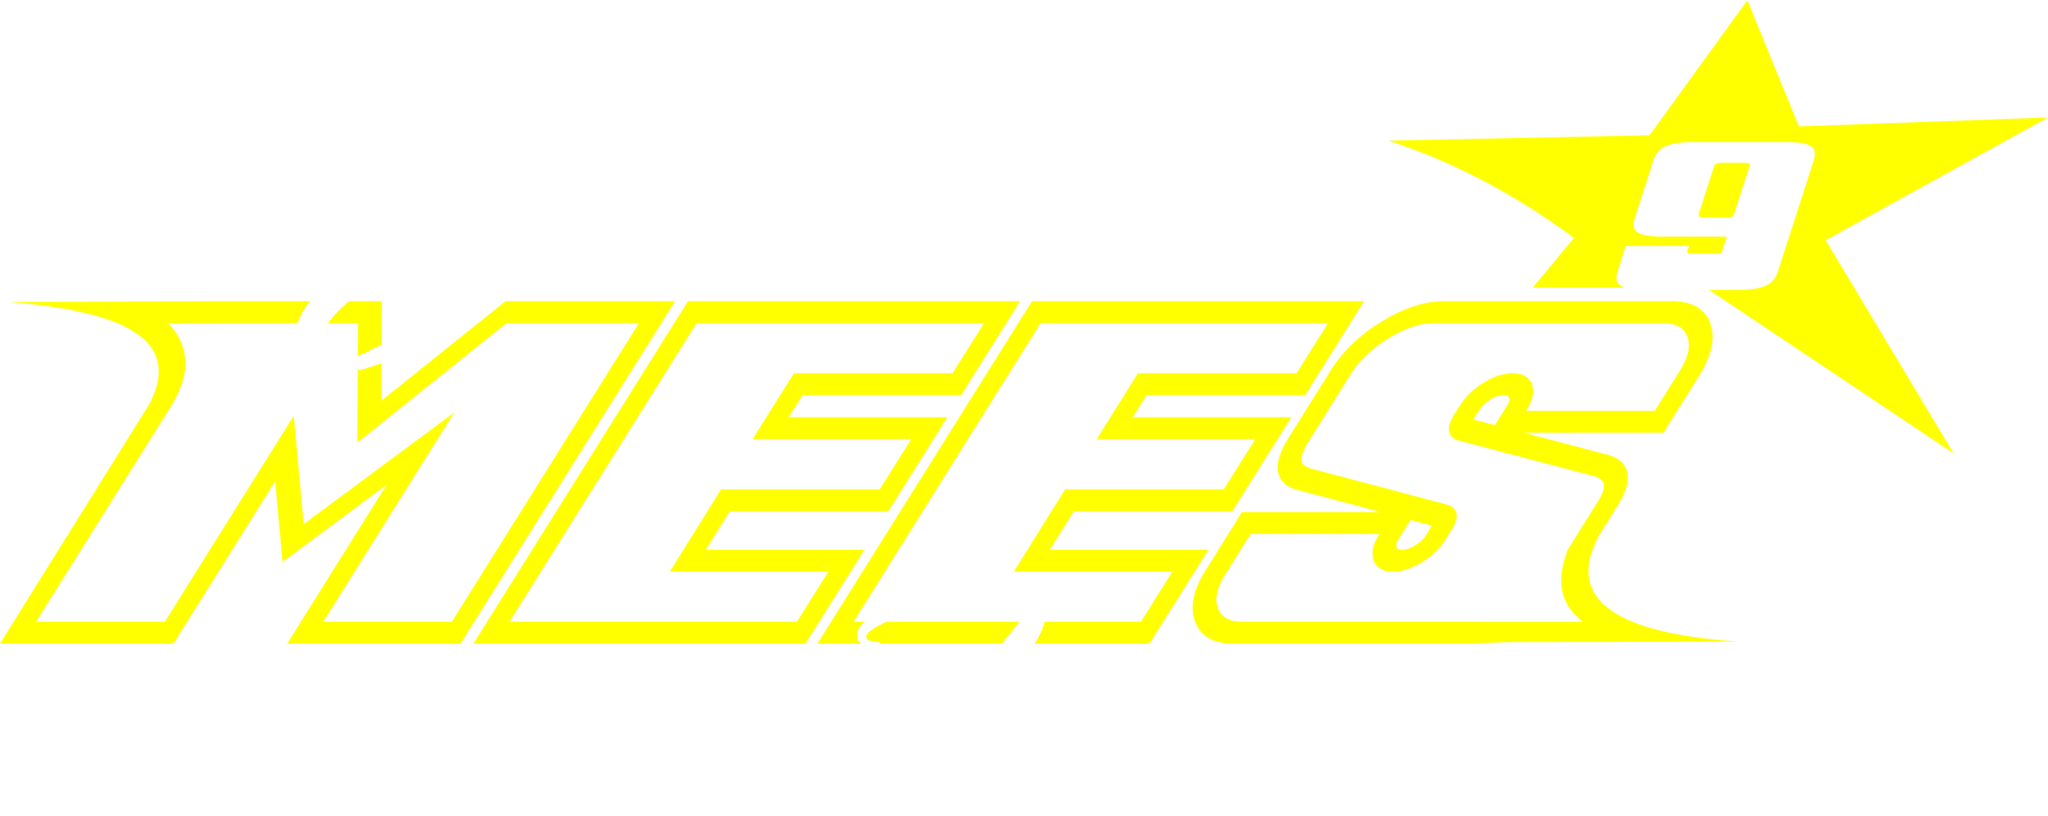 Jared Mees - official website